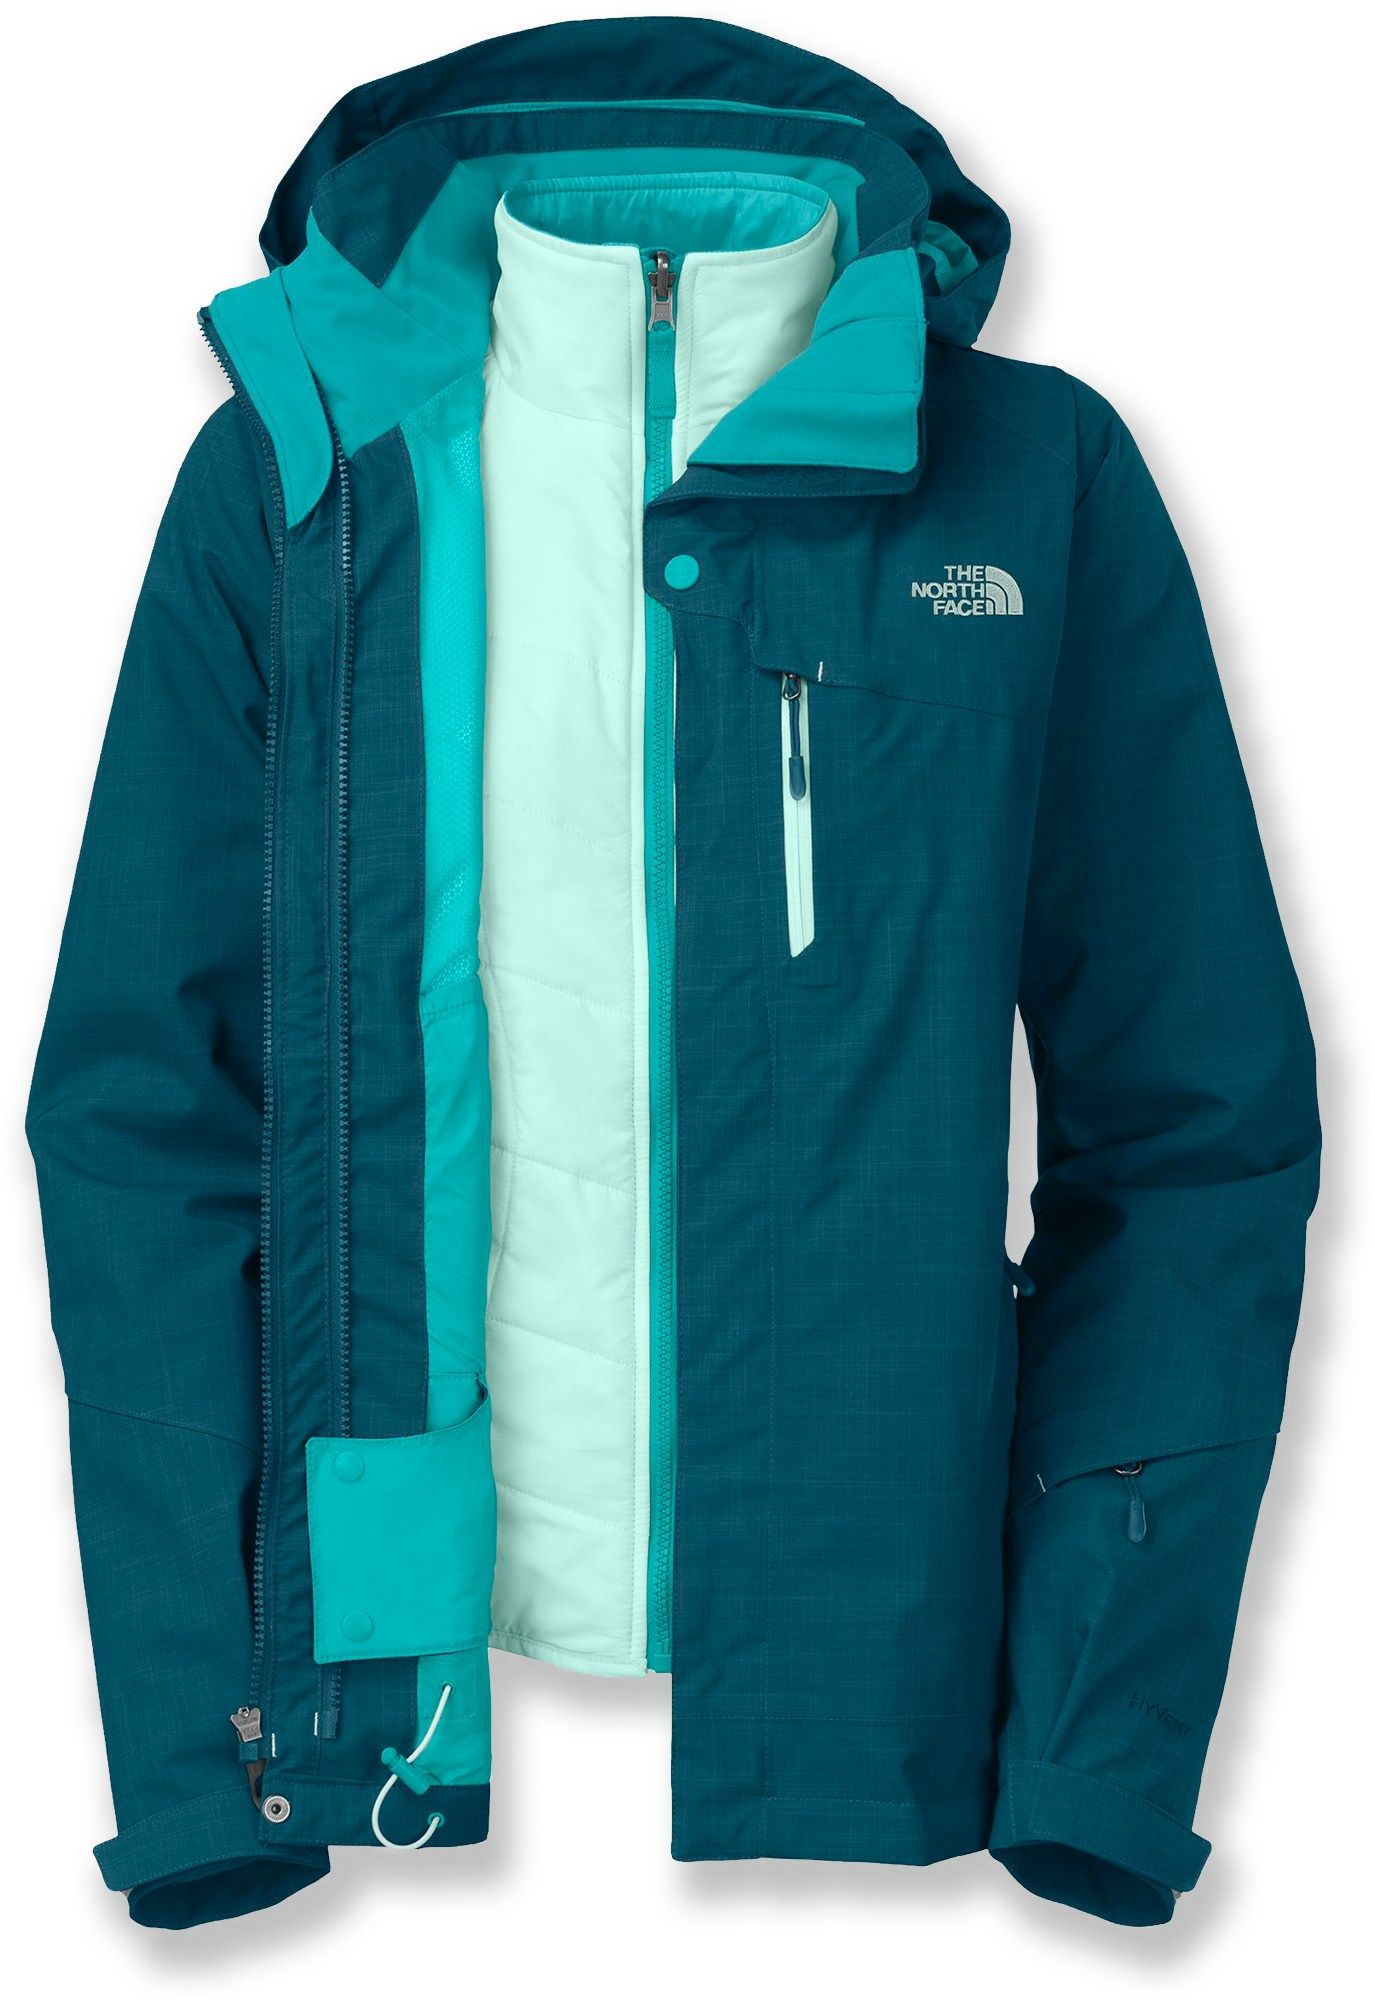 d7c62ae186b8 Stylish and versatile—The North Face Cheakamus Triclimate 3-in-1 Insulated  Jacket - Women s.  REIGifts